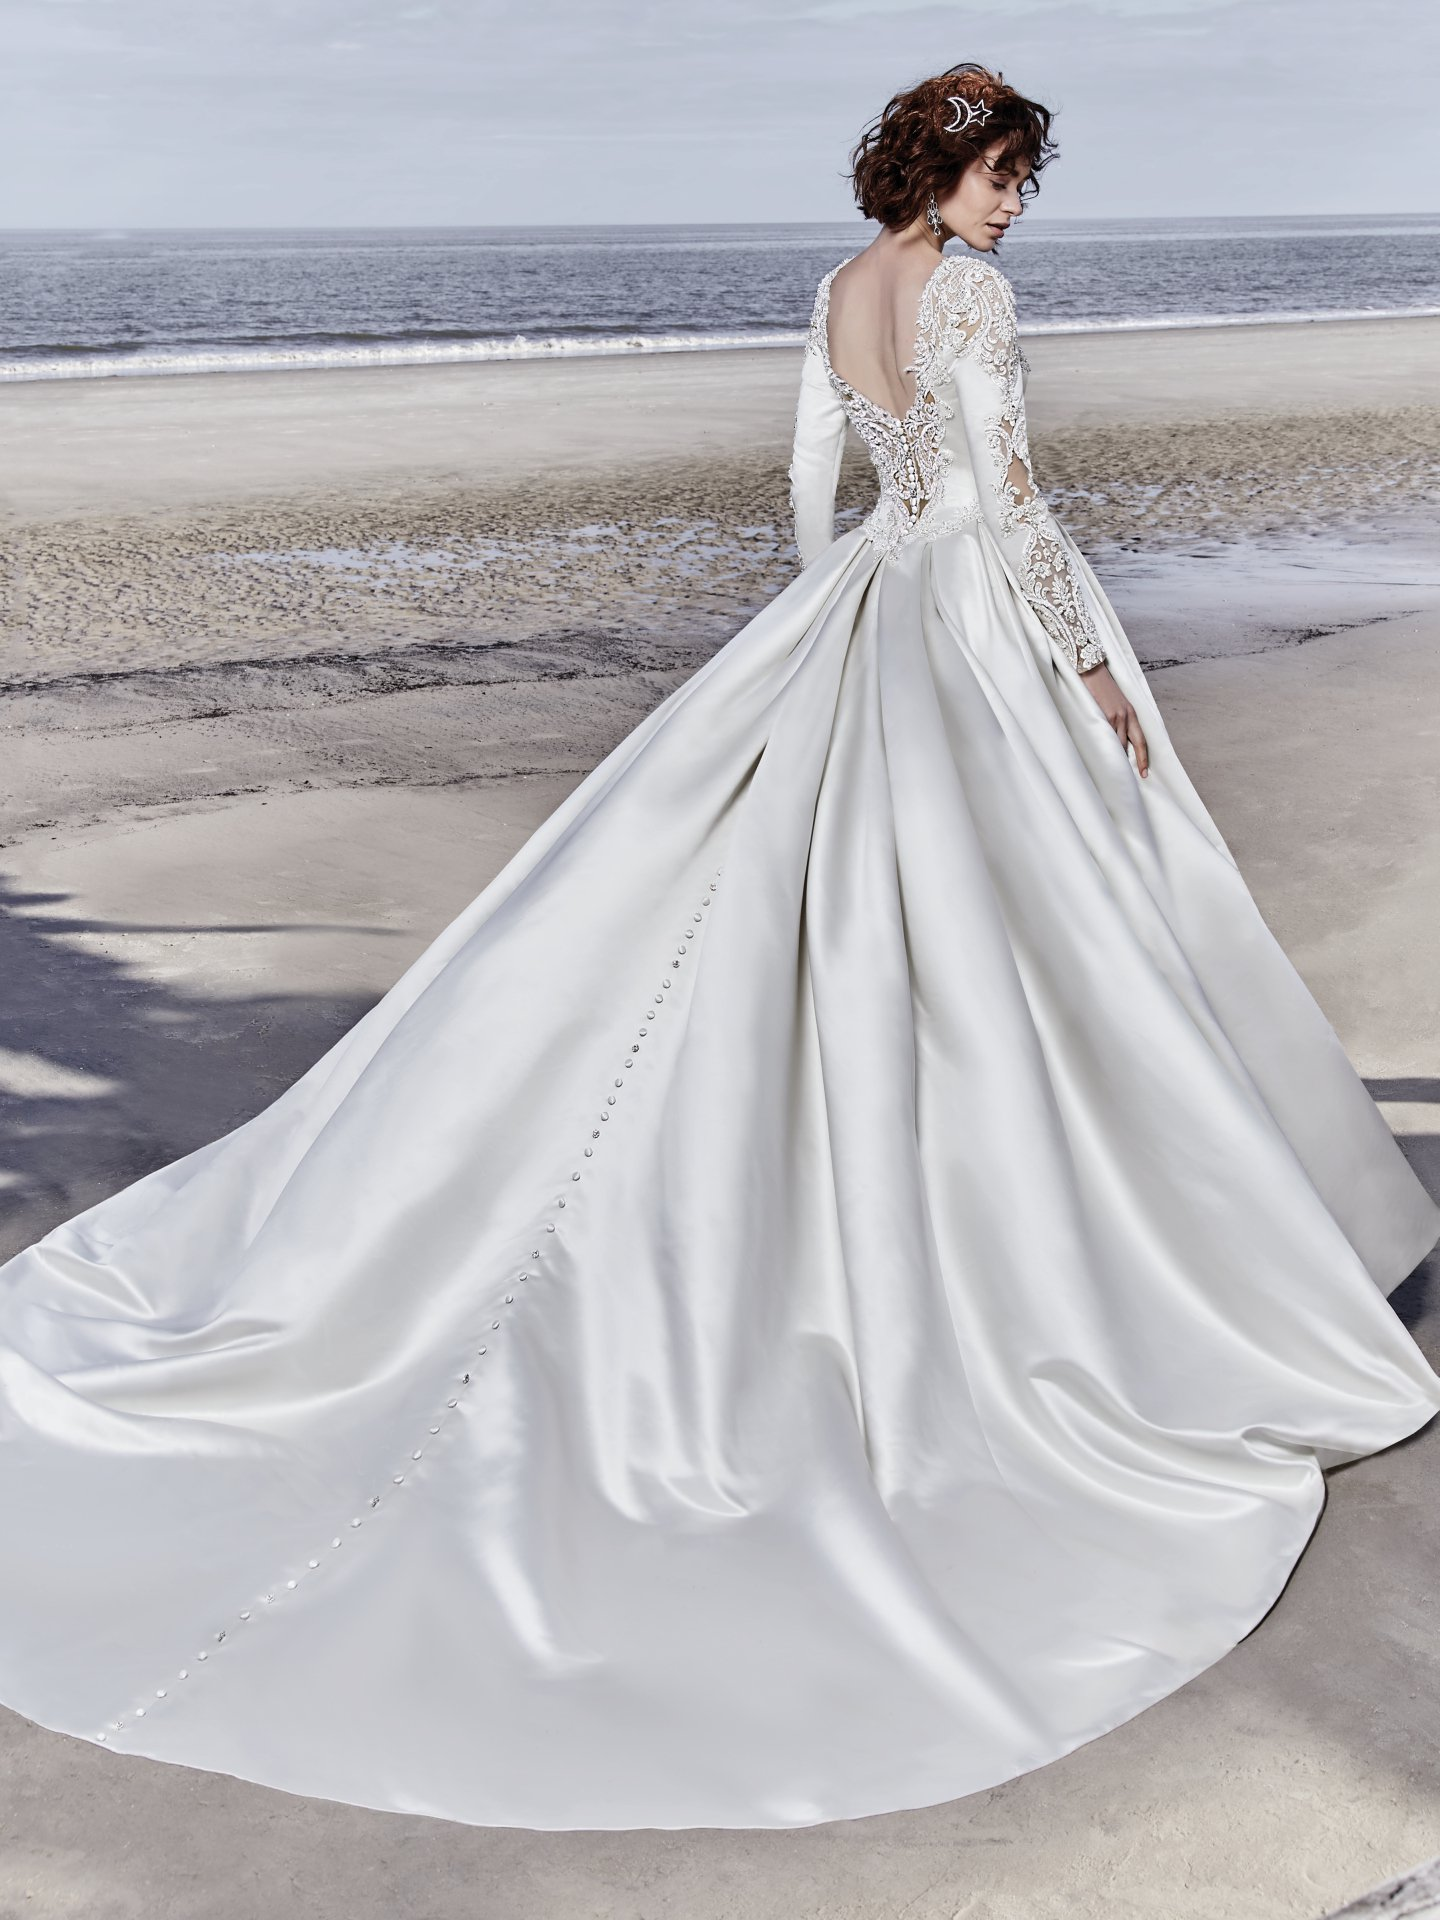 Long Sleeved Vneck Crystaled Lace And Satin Ball Gown Wedding Dress  Kleinfeld Bridal